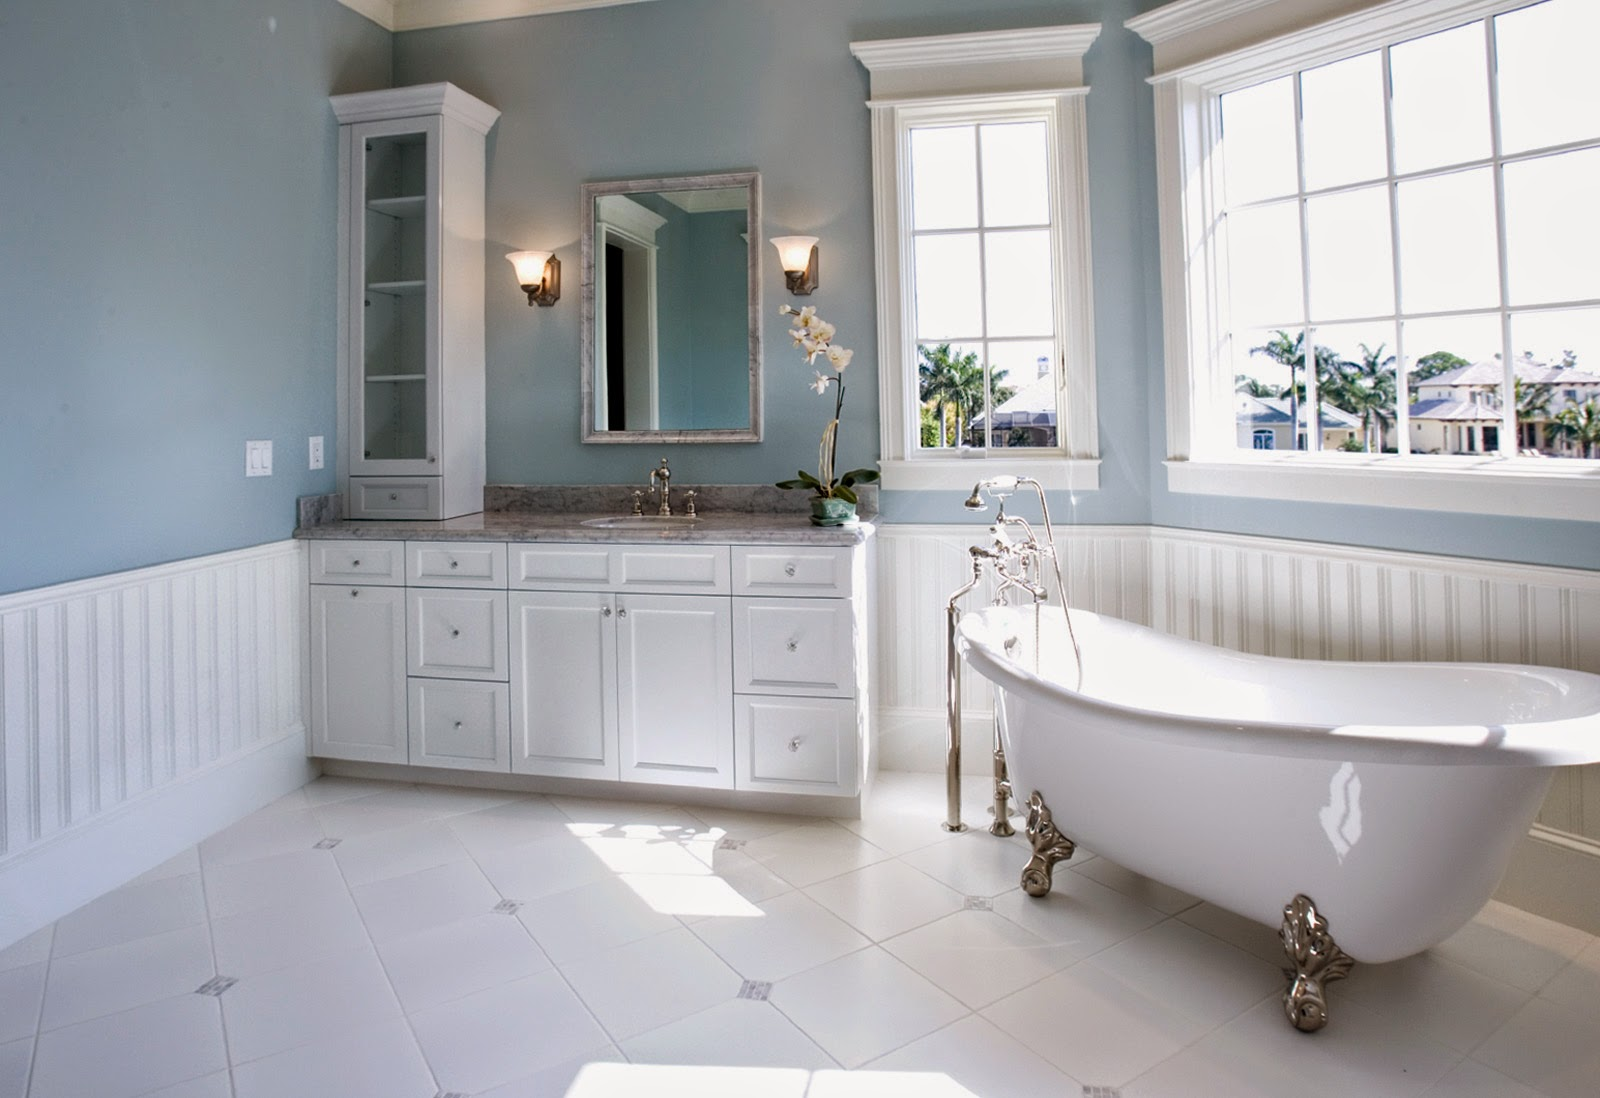 Top 10 beautiful bathroom design 2014 home interior blog for Best bathroom designs